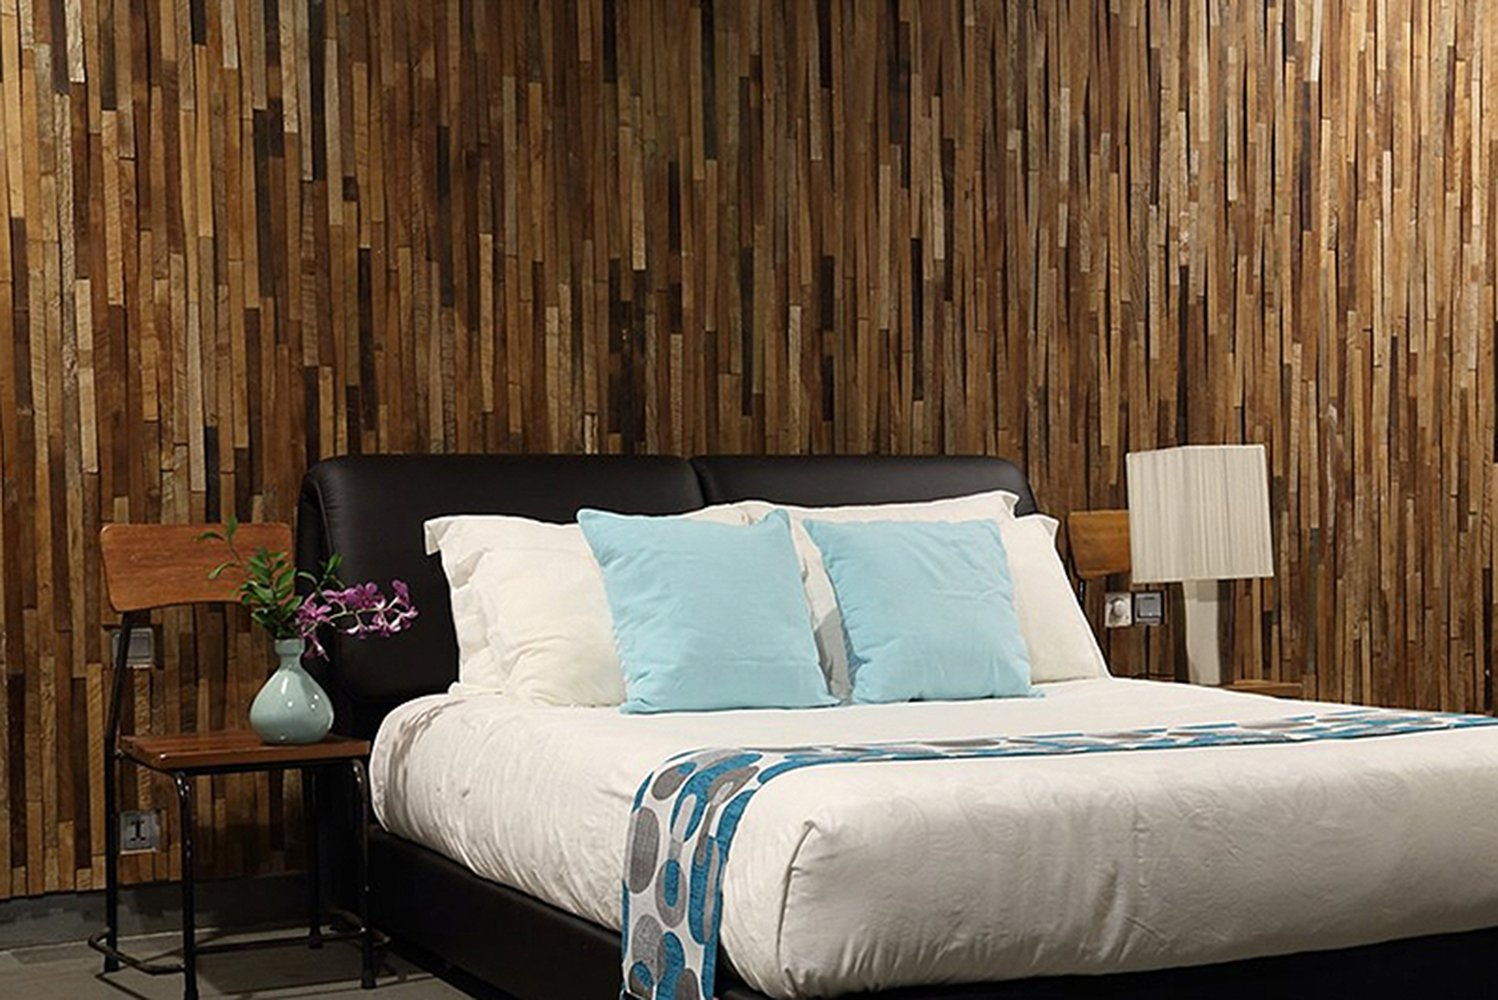 Kayu V-wood wall cladding is a meshed tile arrangement of reclaimed Indonesian teak with a tapering relief.